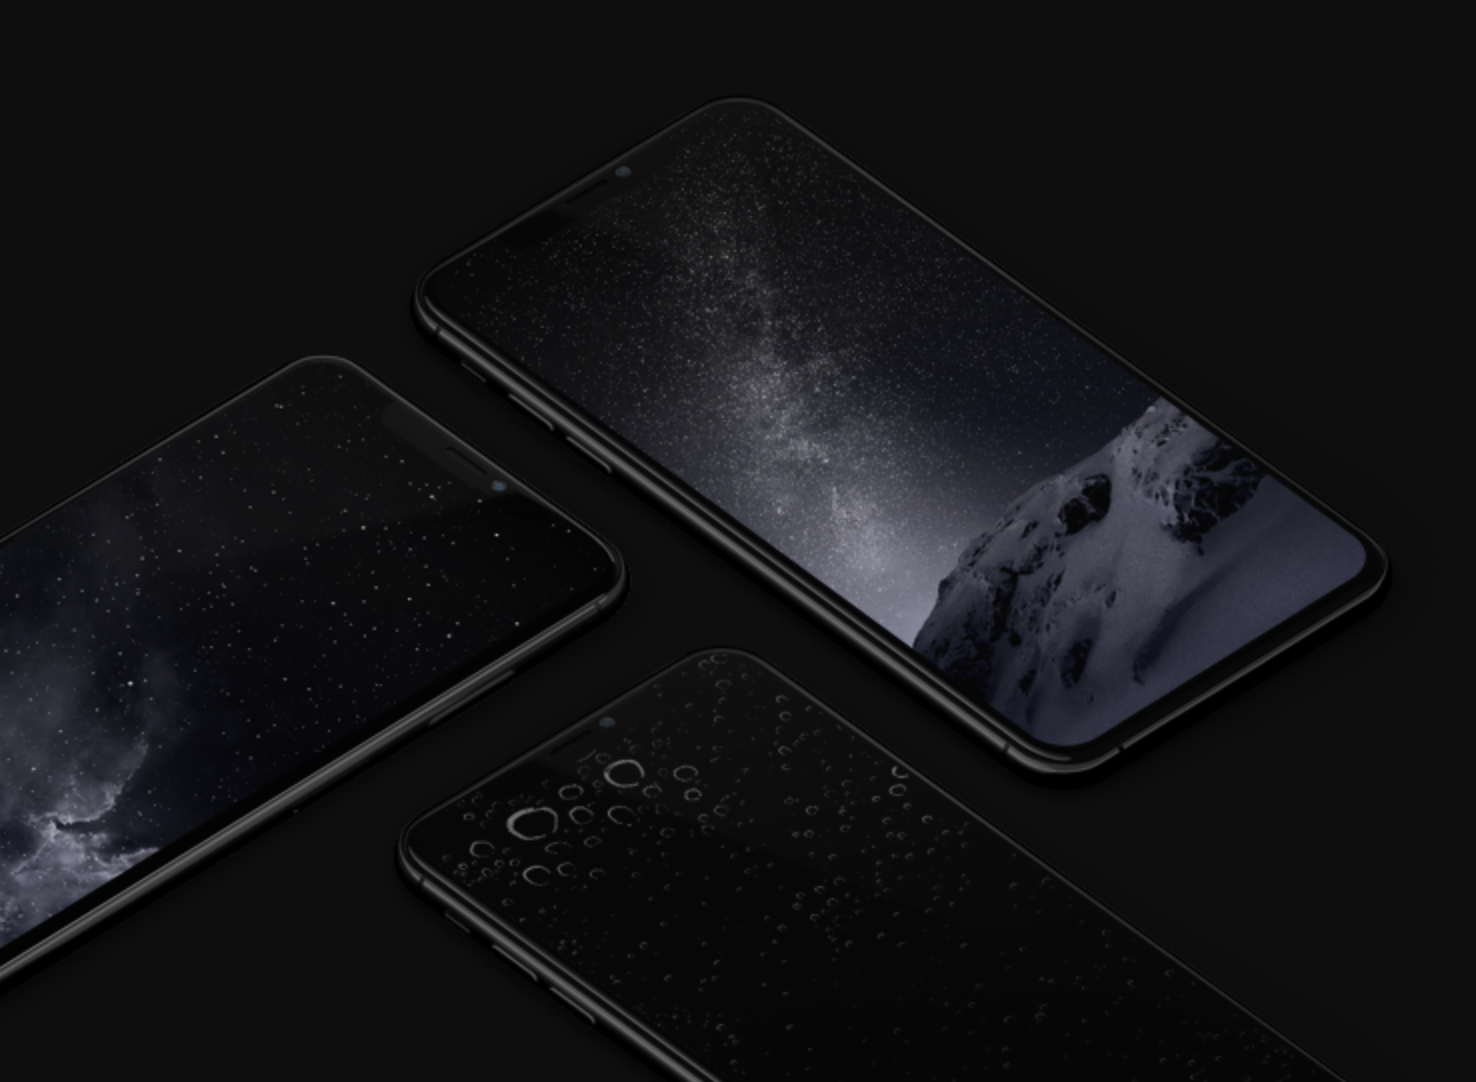 iOS dark mod iphone wallpaper ar72014 mock up